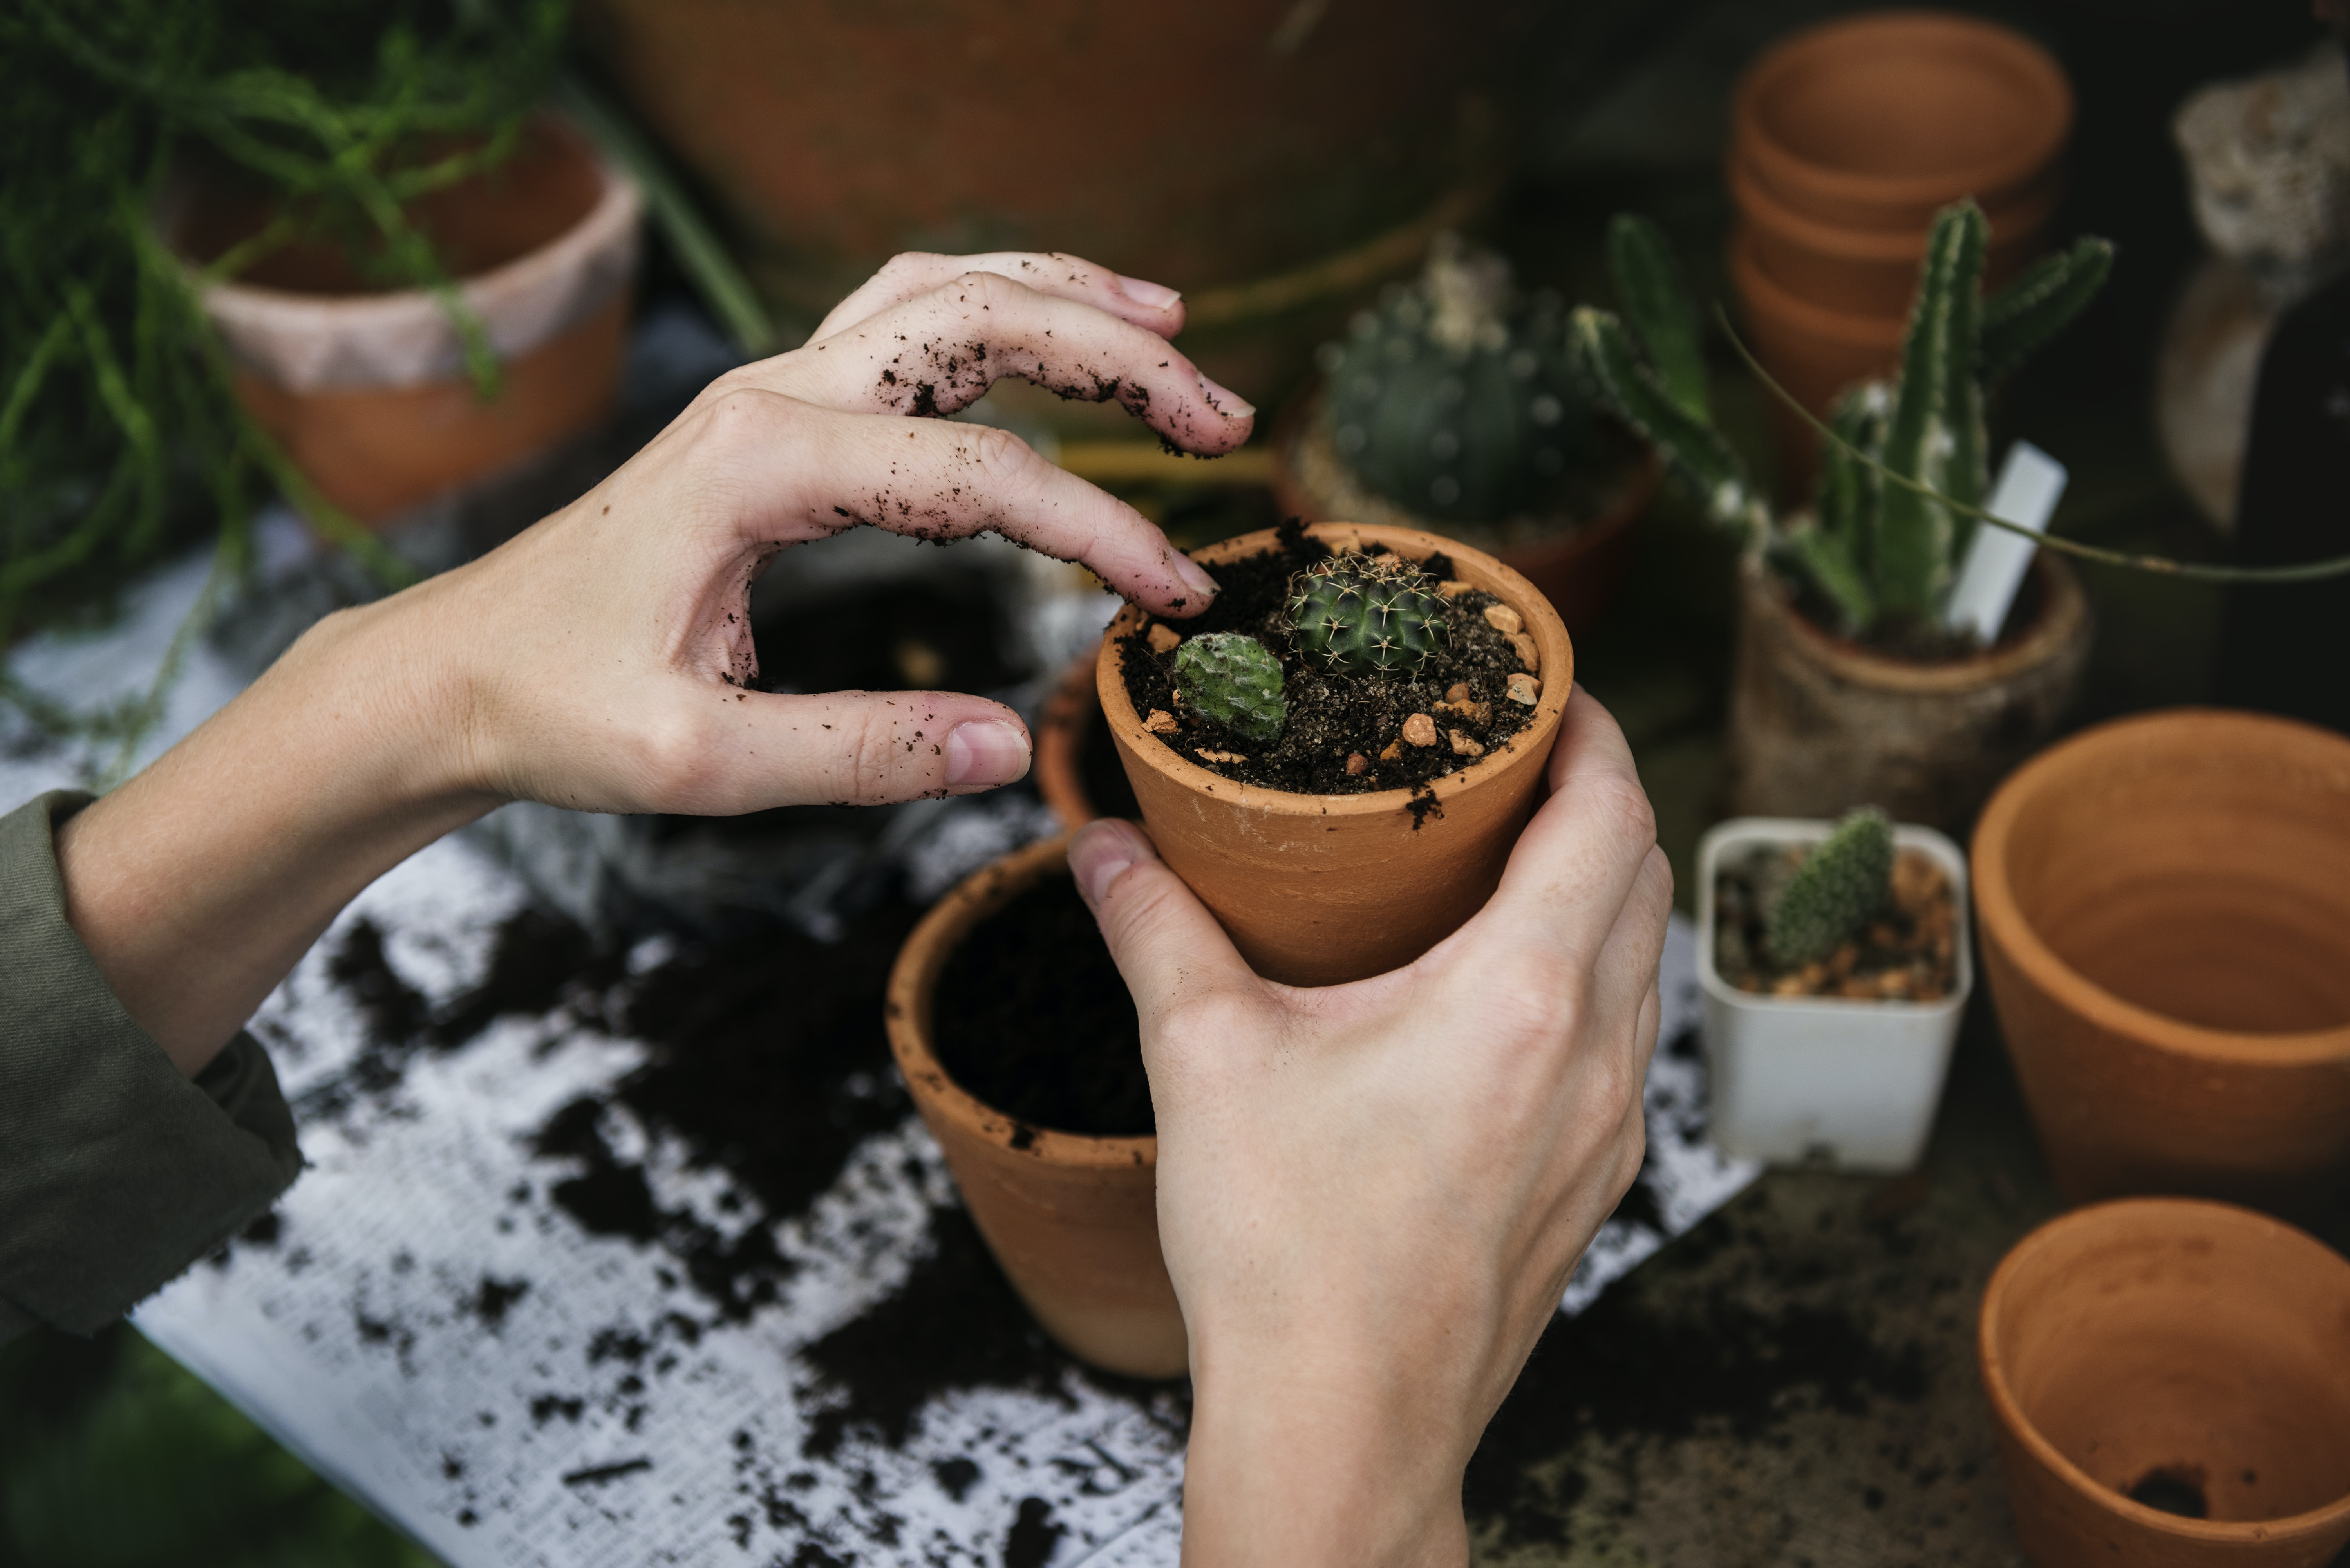 person holding orange clay garden pot with green leafed plant on it